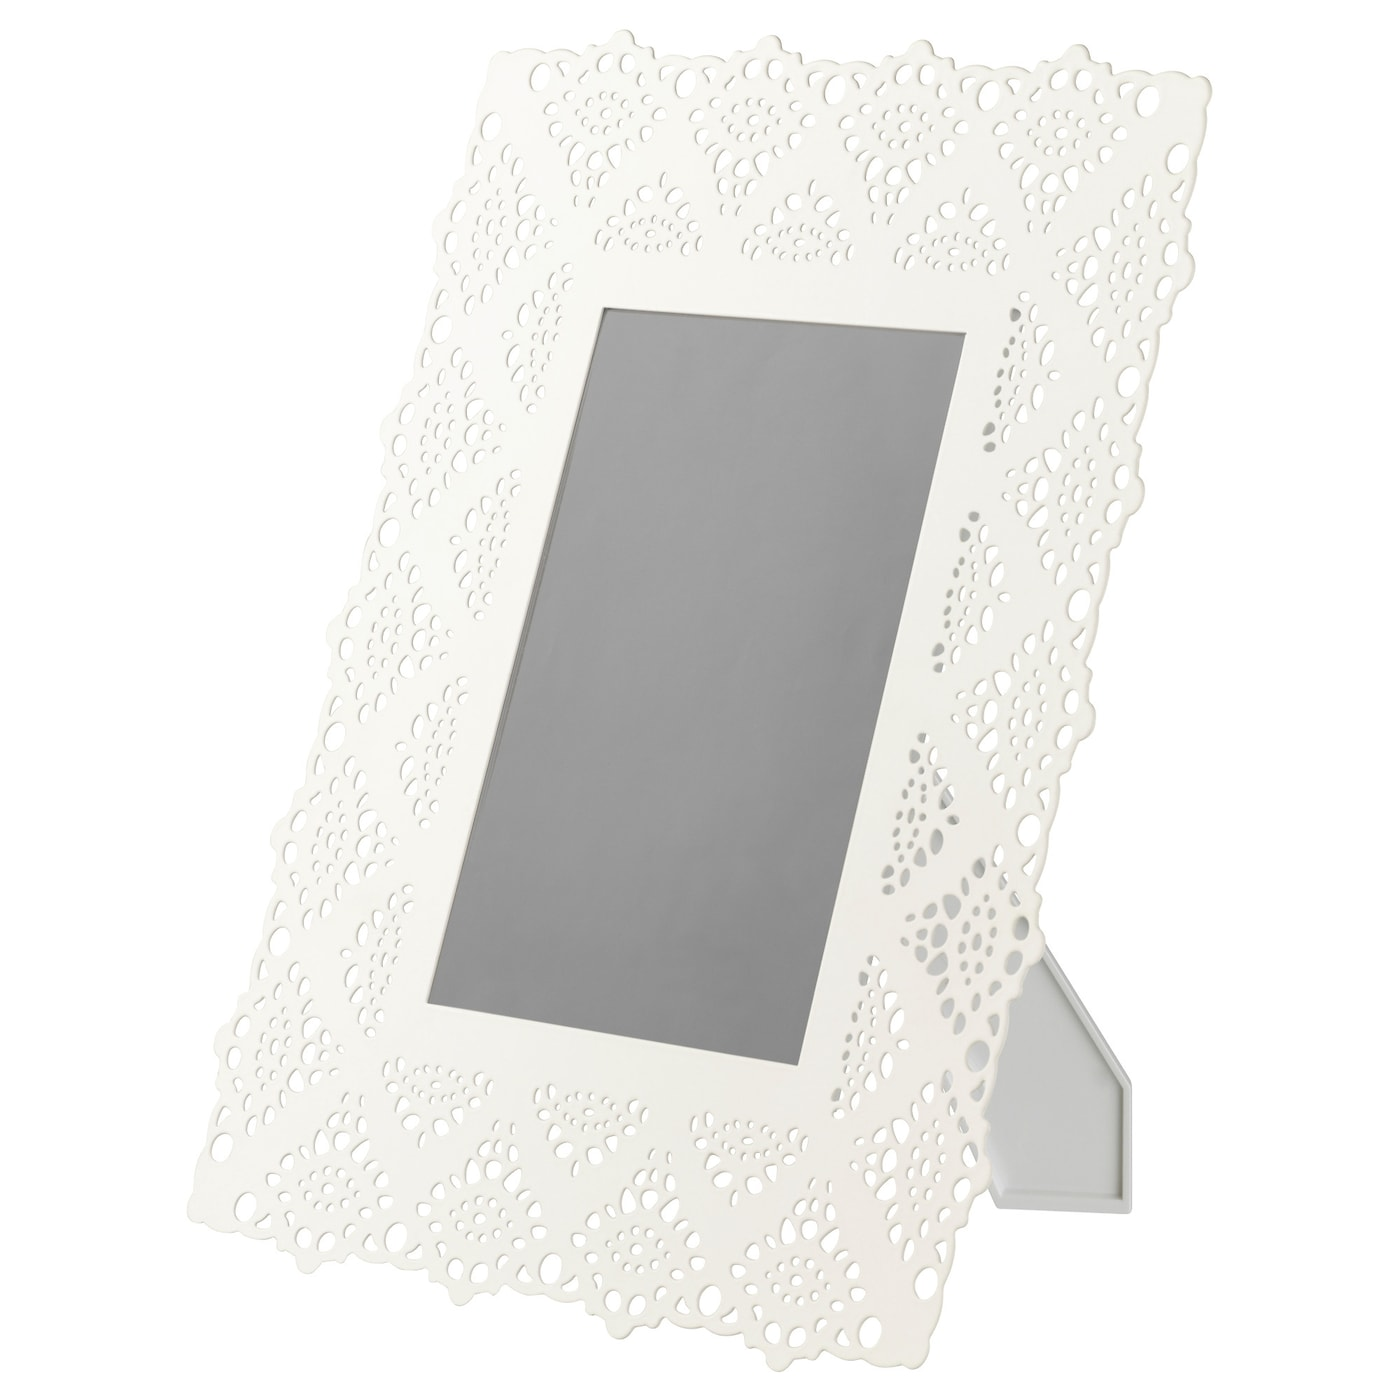 IKEA SKURAR frame Front protection in plastic makes the frame safer to use.